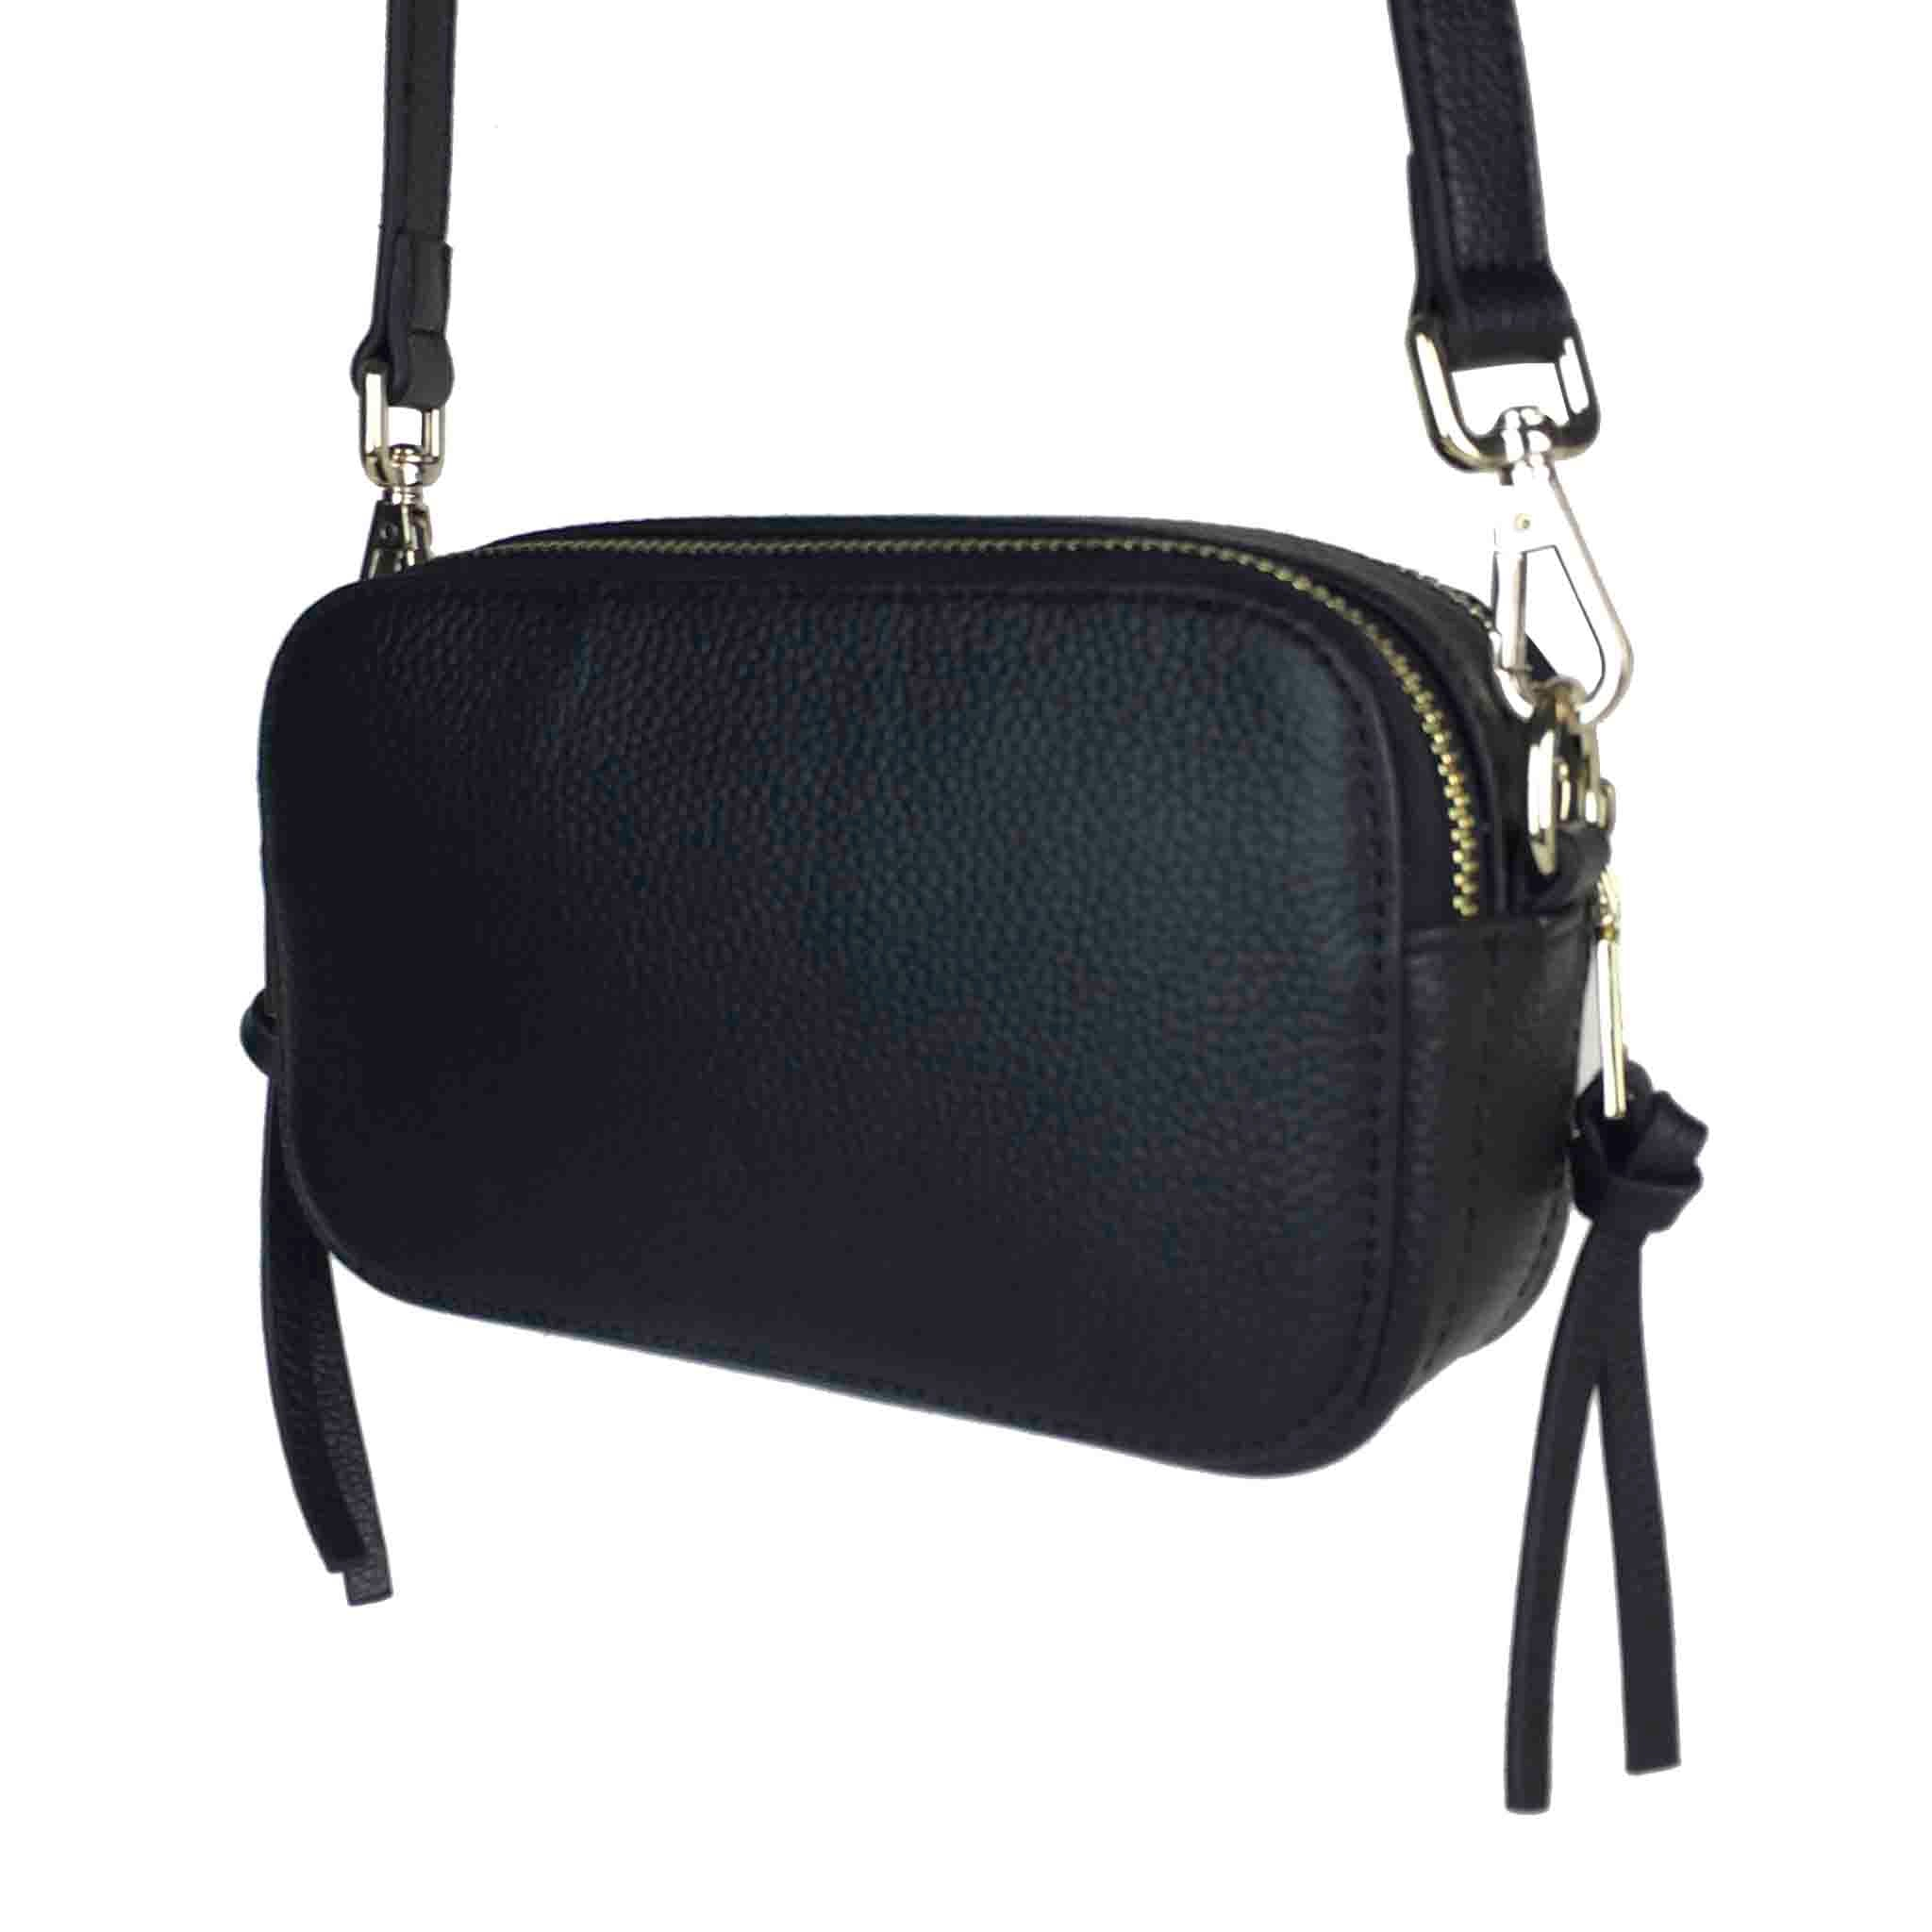 WOMEN'S SMALL BOXY CROSSBODY LAIB BAG